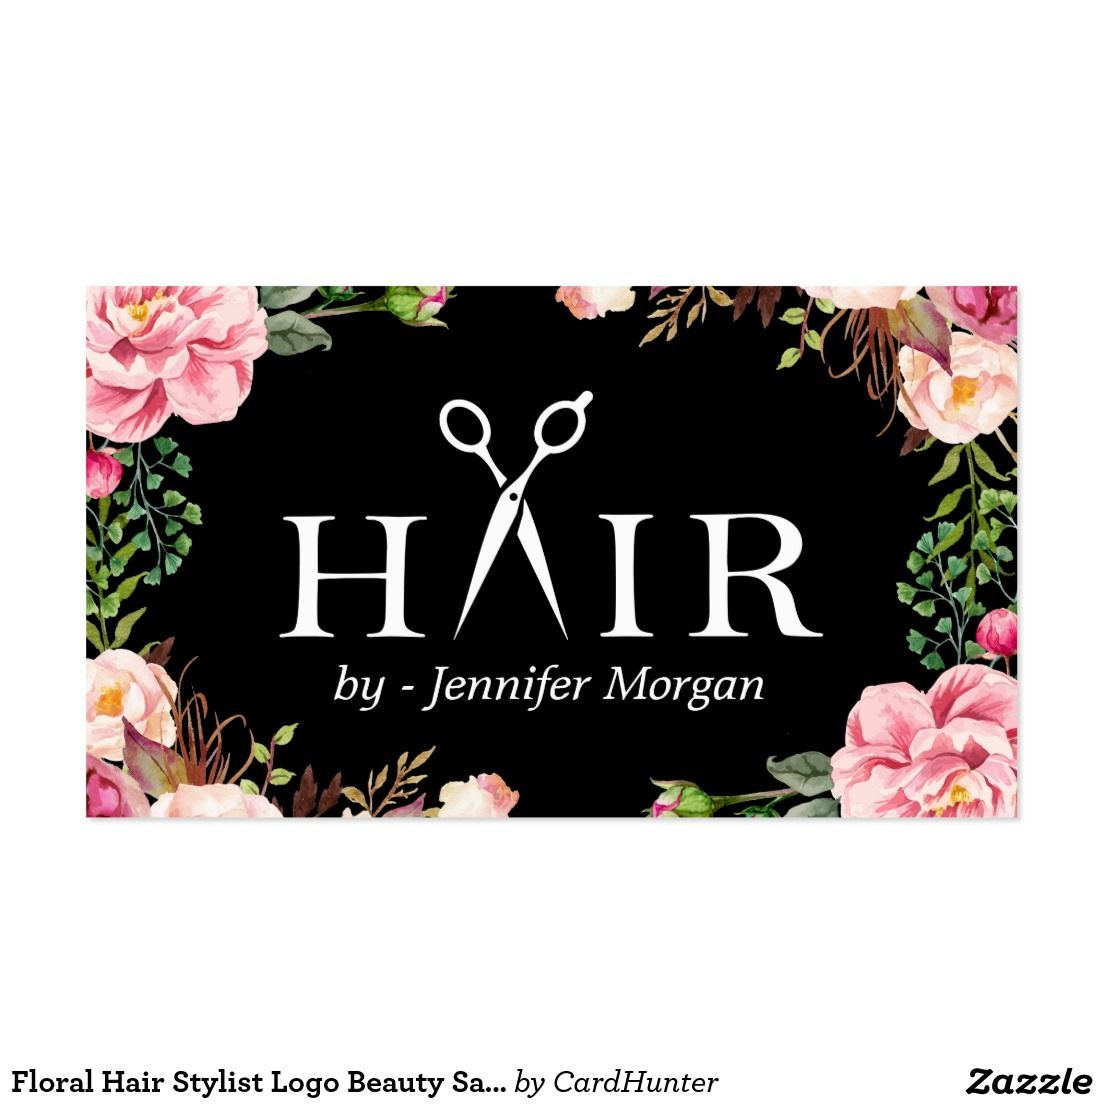 Floral Hair Stylist Logo Beauty Salon Appointment | Pinterest ...